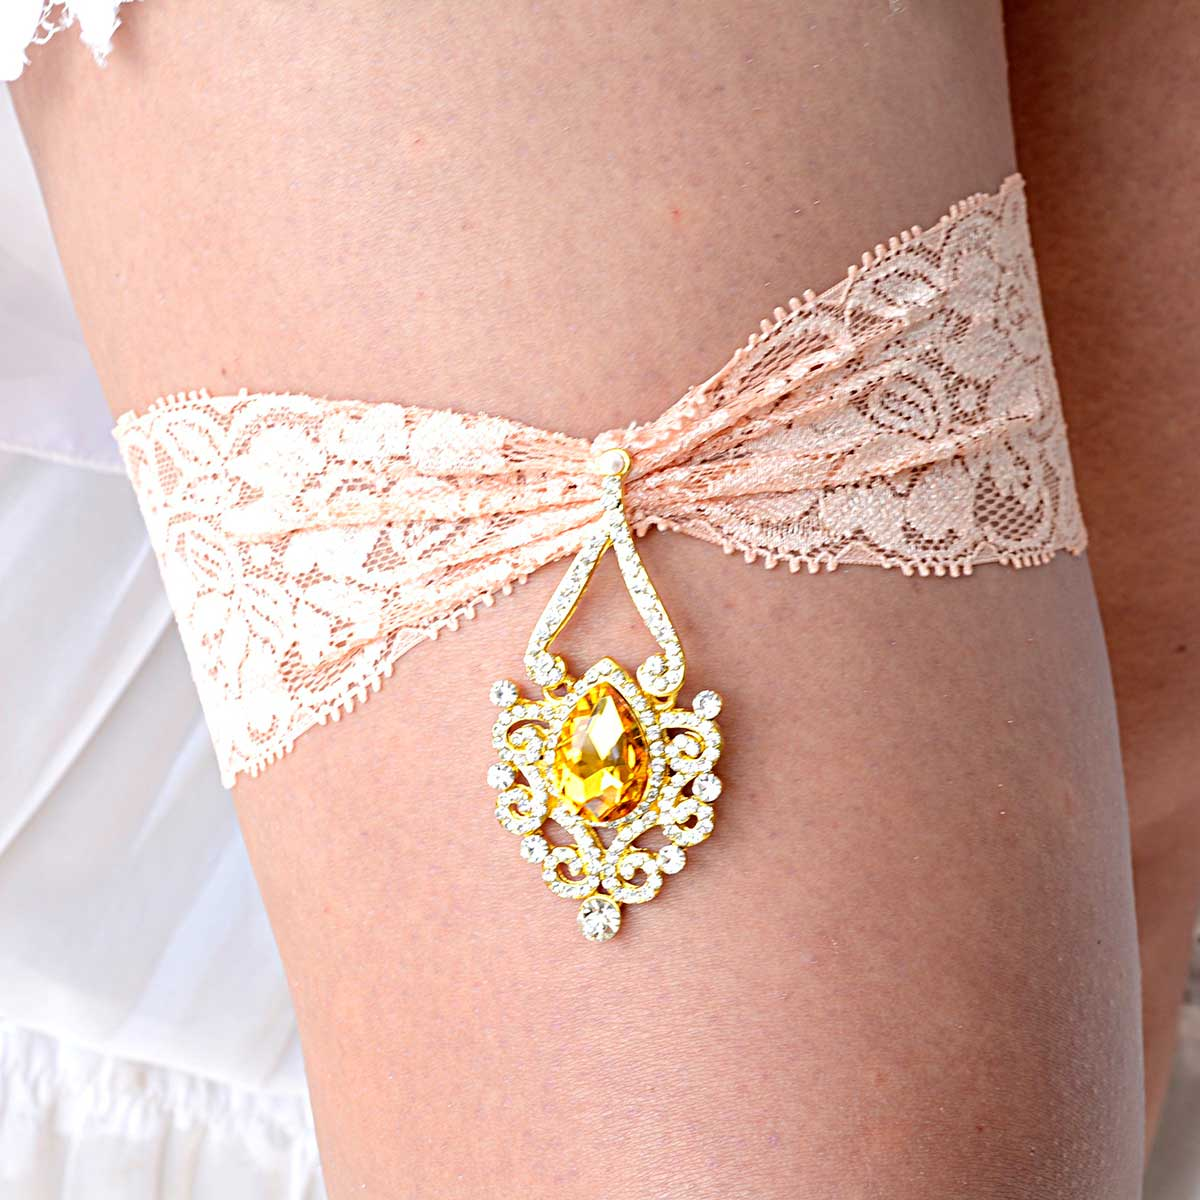 Clear & Yellow Rhinestone Gold Garter Set With Peach Lace - Wedding Garter - SuzannaM Designs